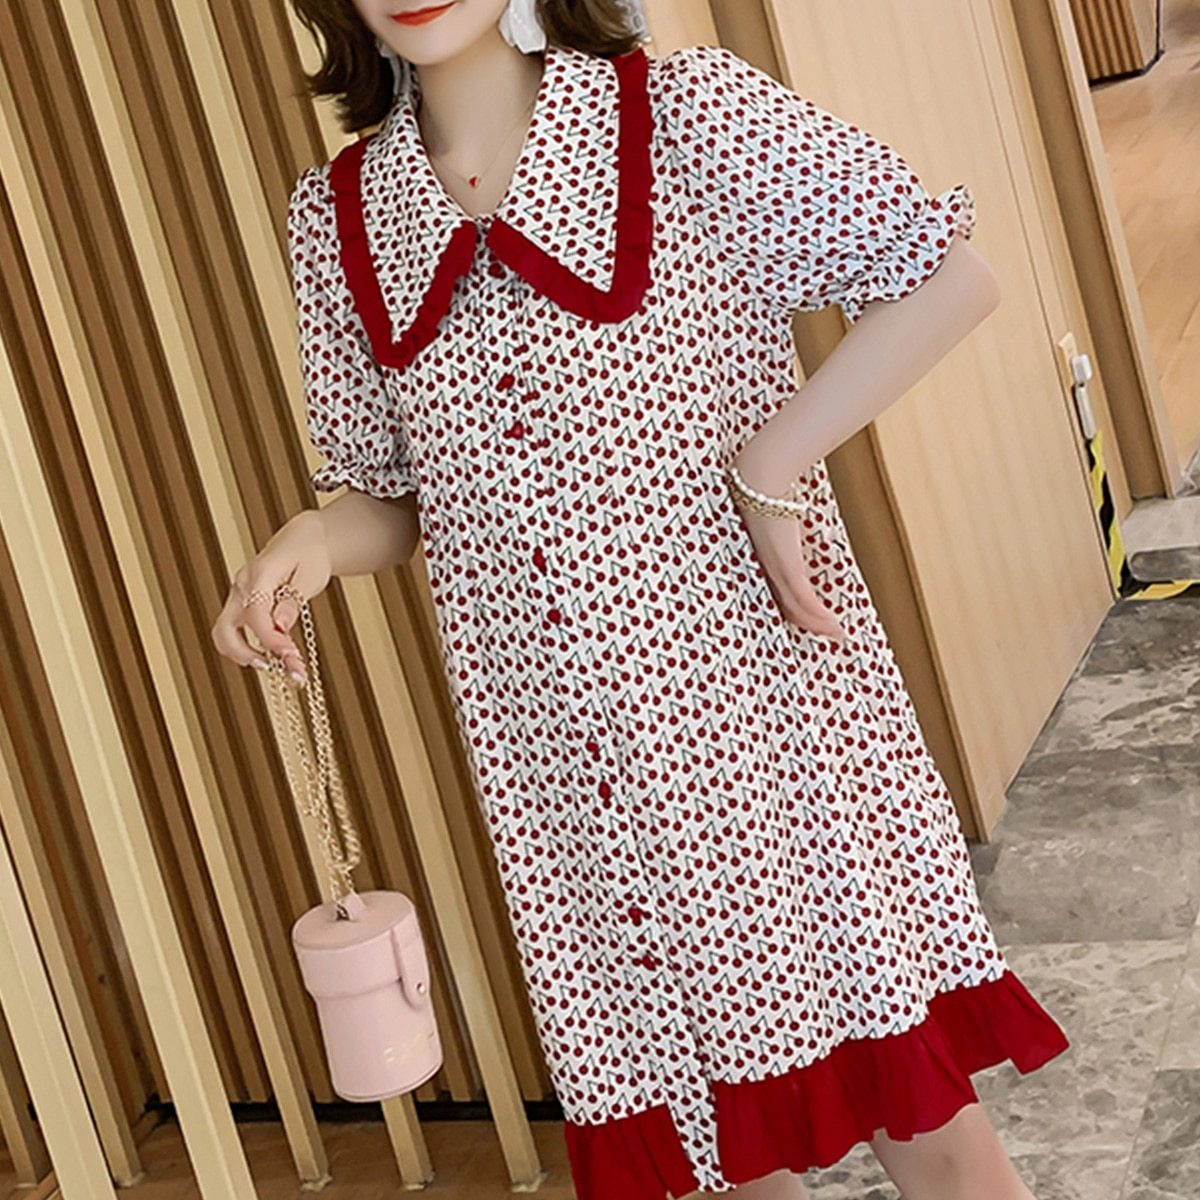 Maternity Dress Cherry Printed Turn Down Collar Short Sleeve Loose Dress image 2